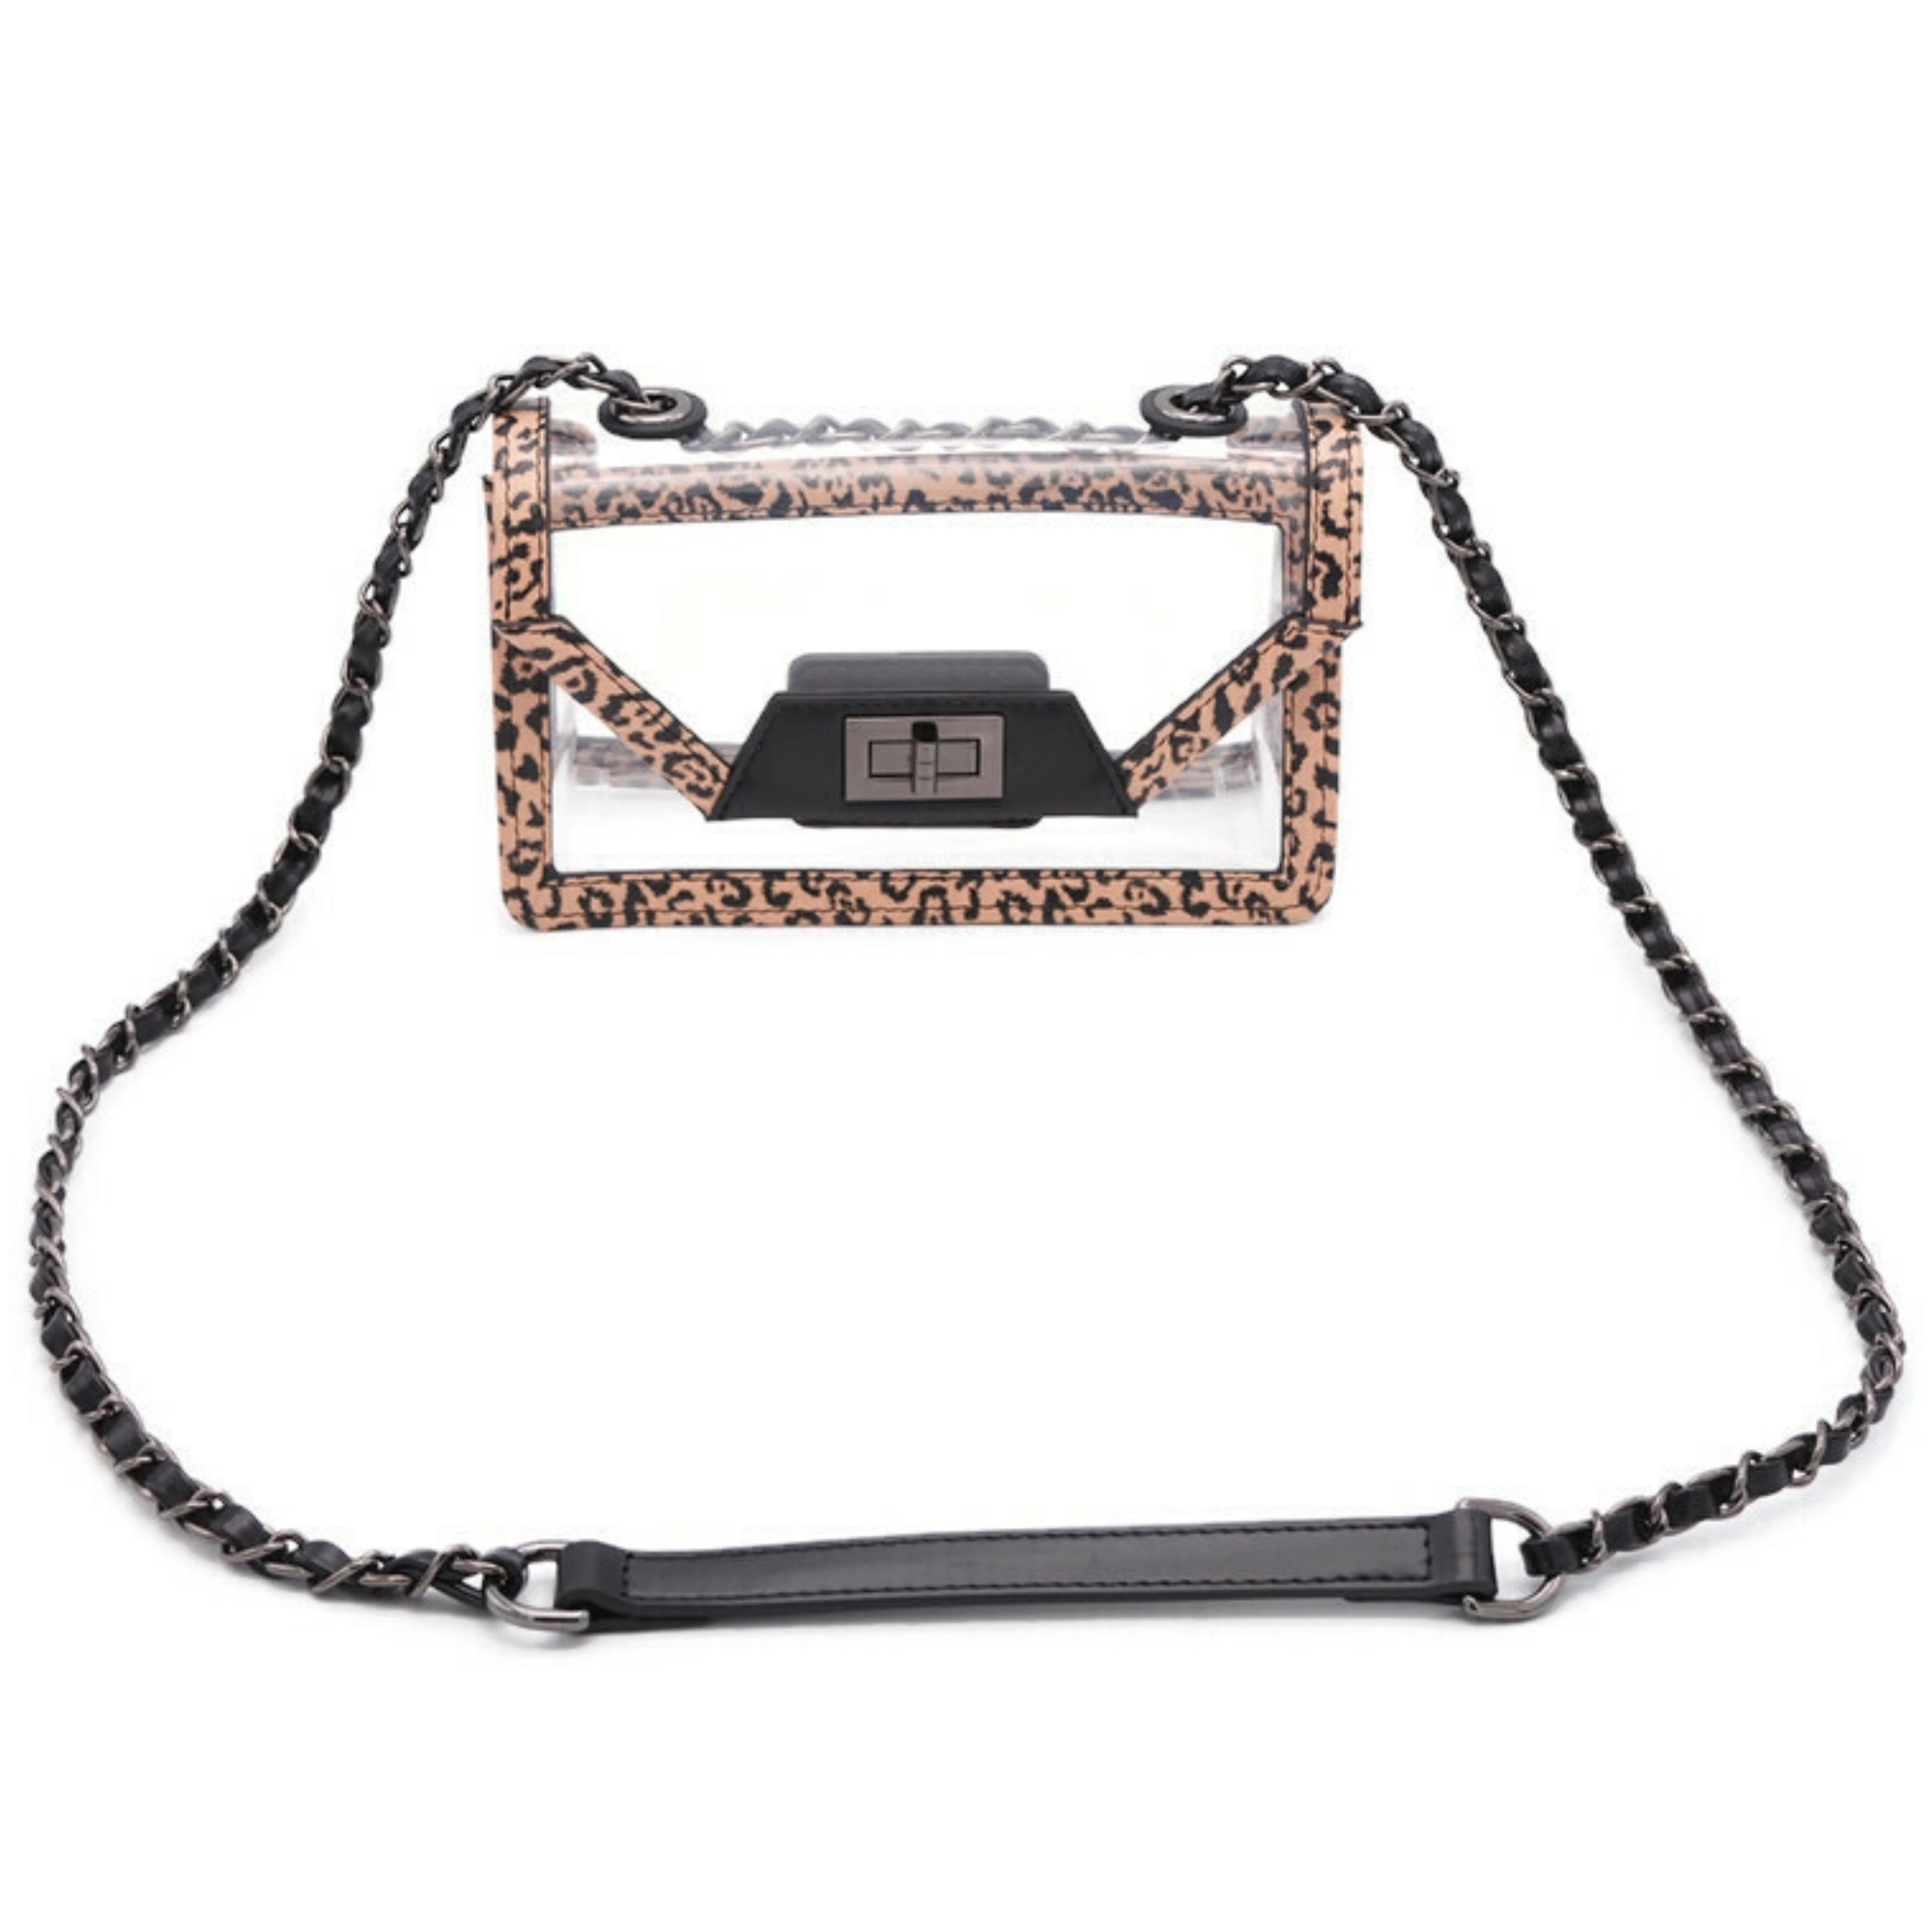 The Mini Cher | Cheetah Cub POLICY Handbags